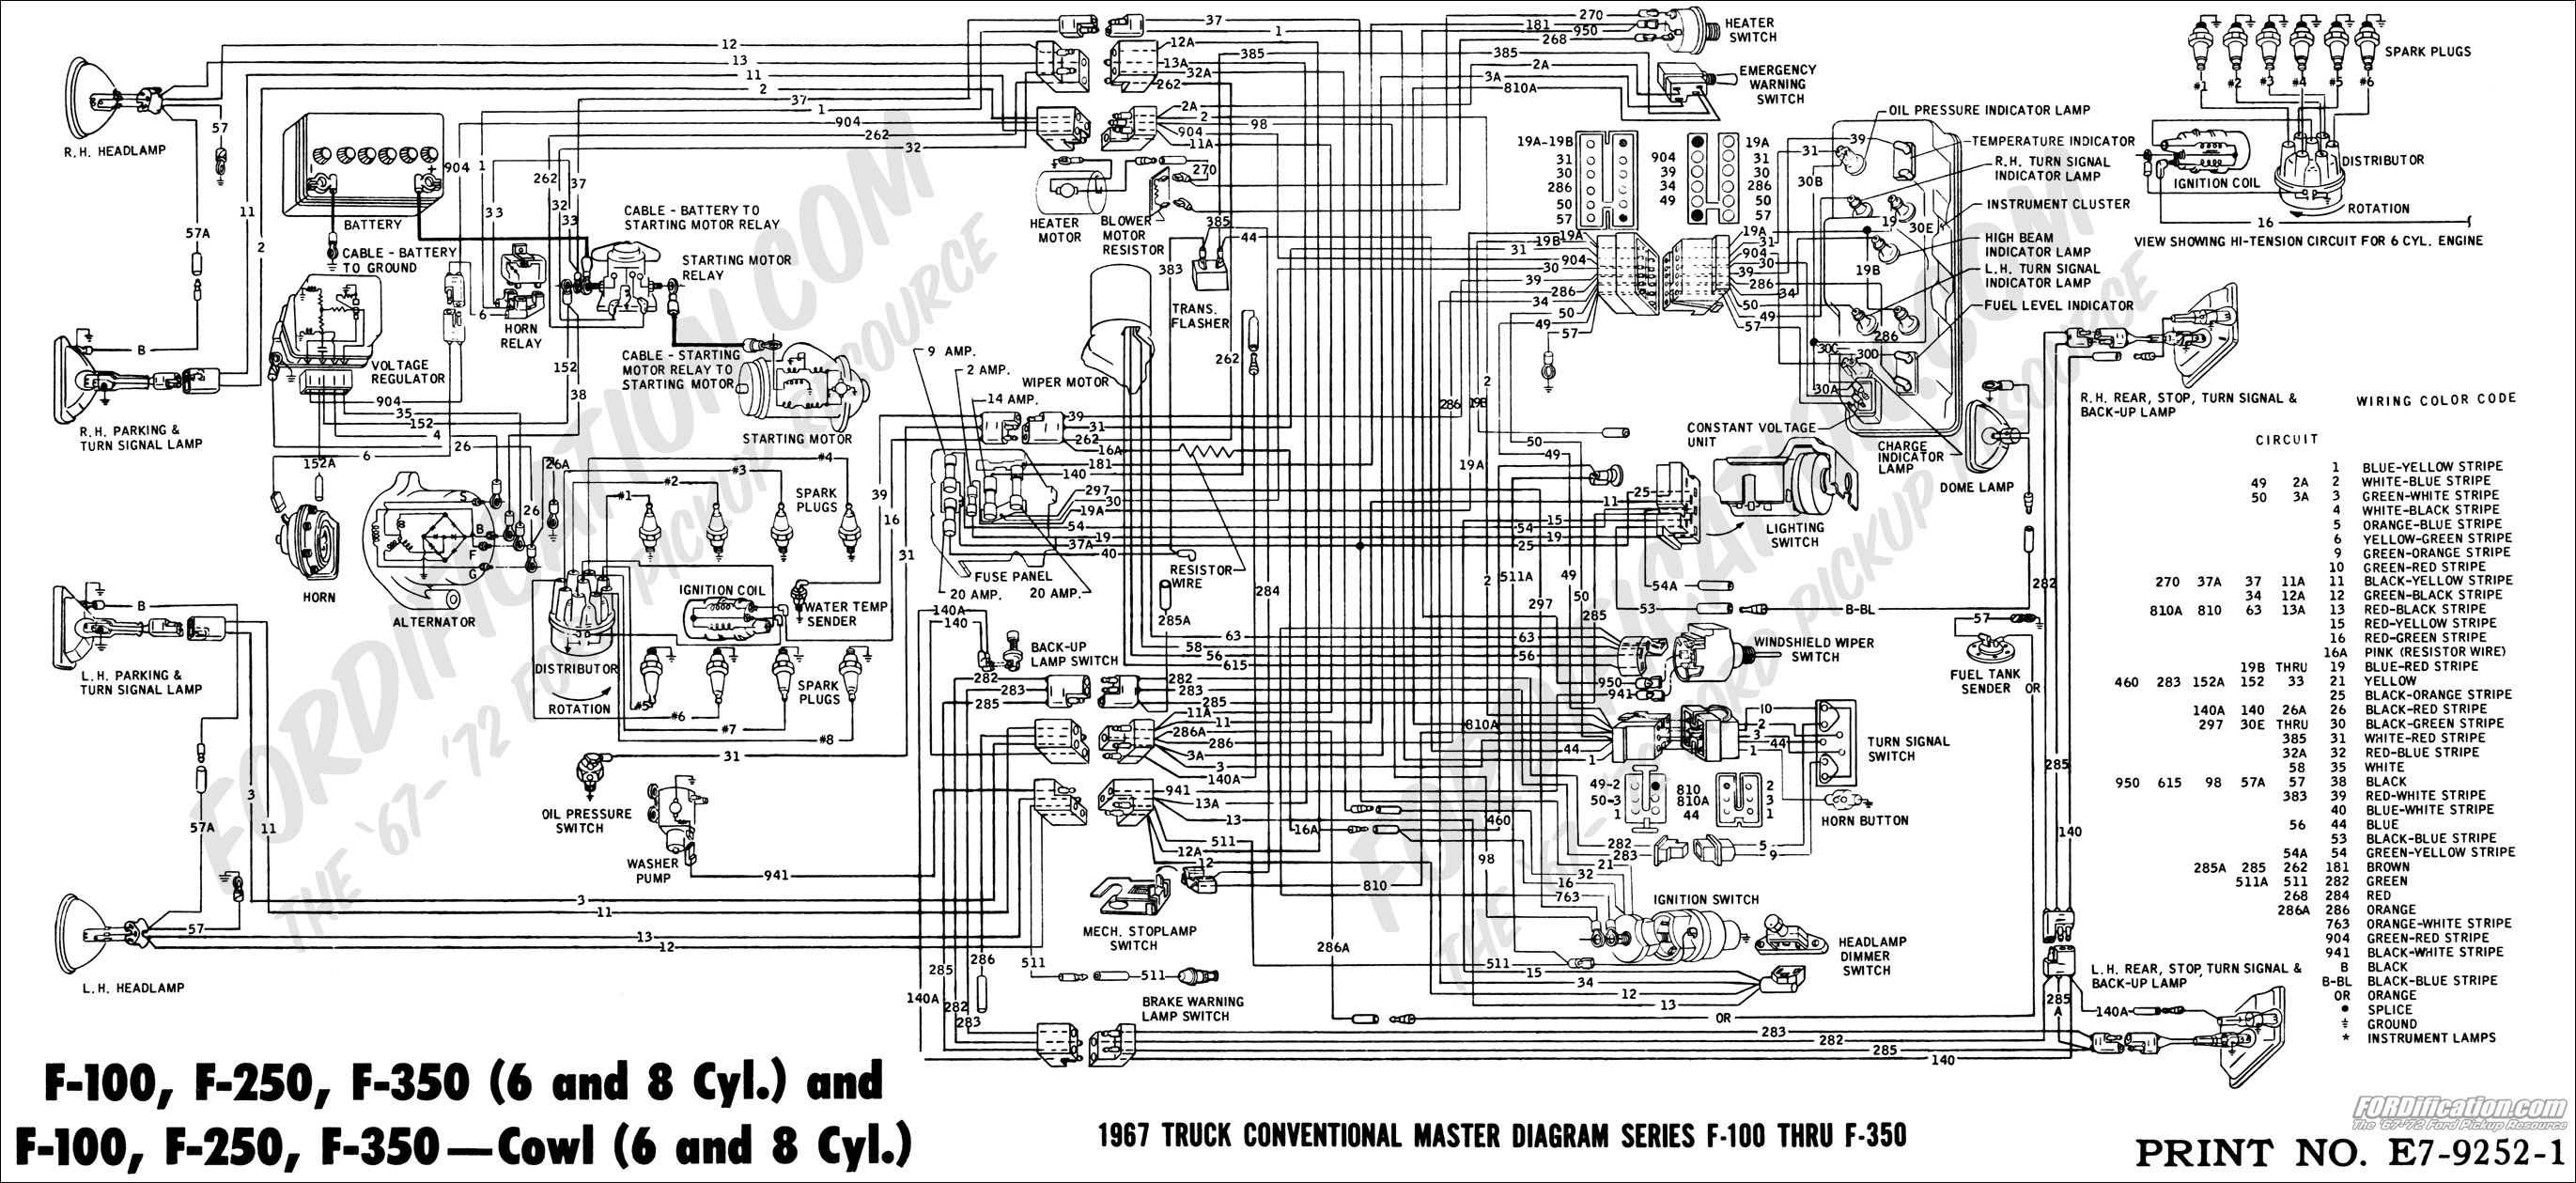 1999 ford e150 fuse diagram another blog about wiring diagram u2022 rh ok2  infoservice ru 1999 ford e150 fuse diagram 1999 ford e150 fuse box